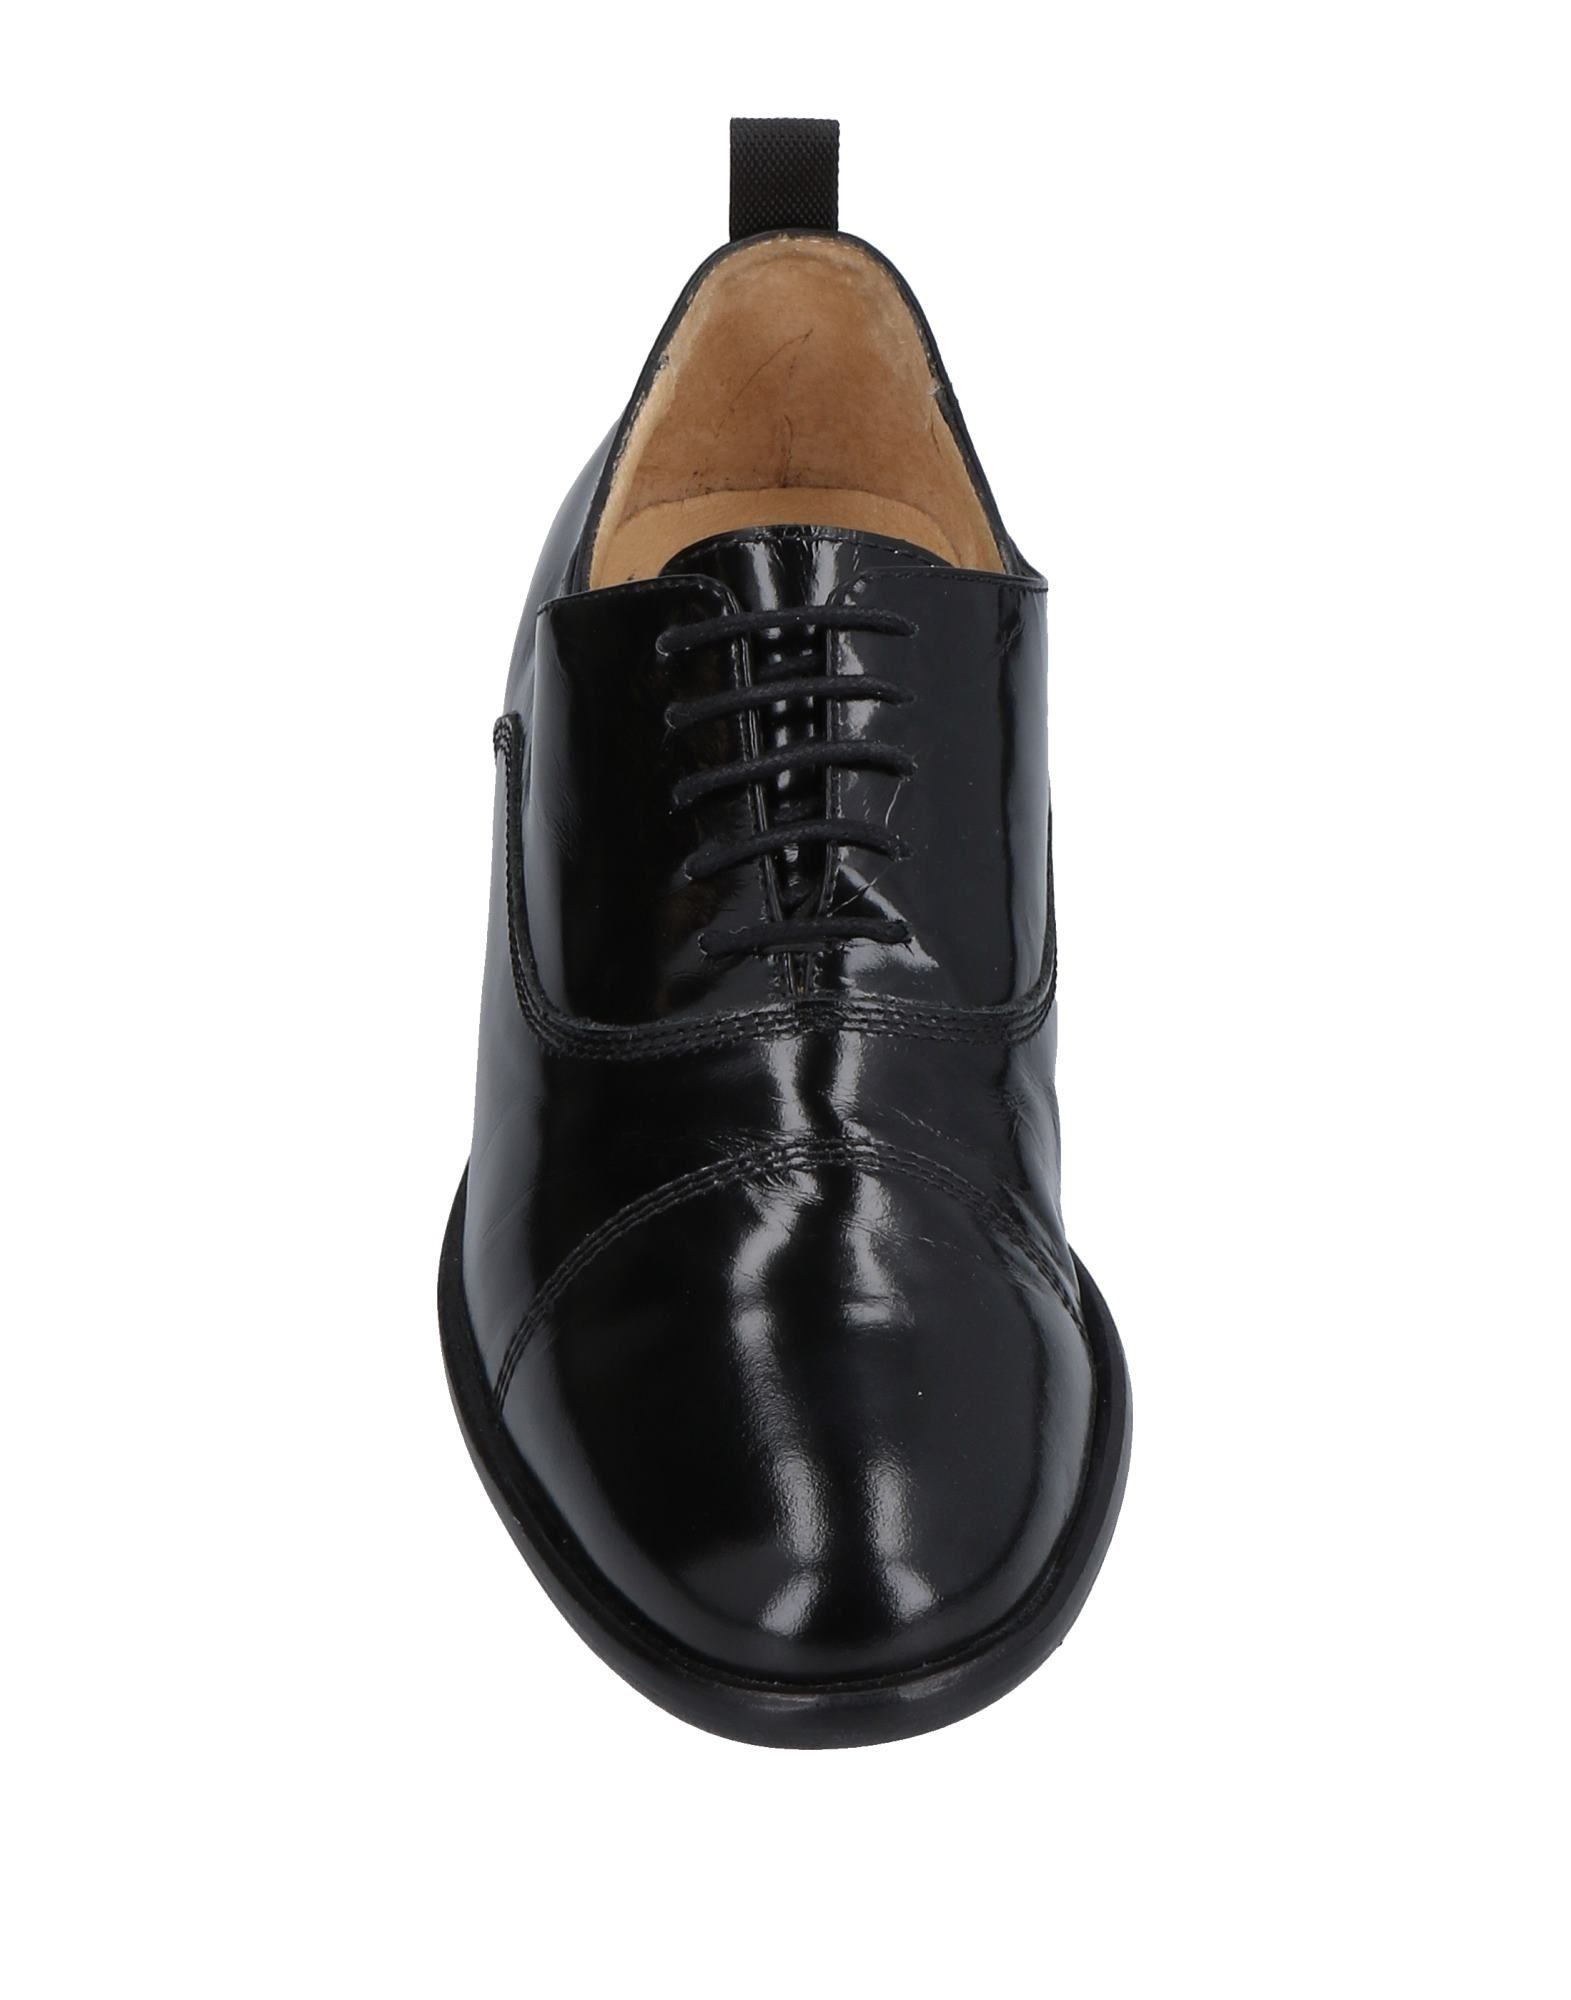 CHAUSSURES - TongsGia Couture gGUoIDOnYX